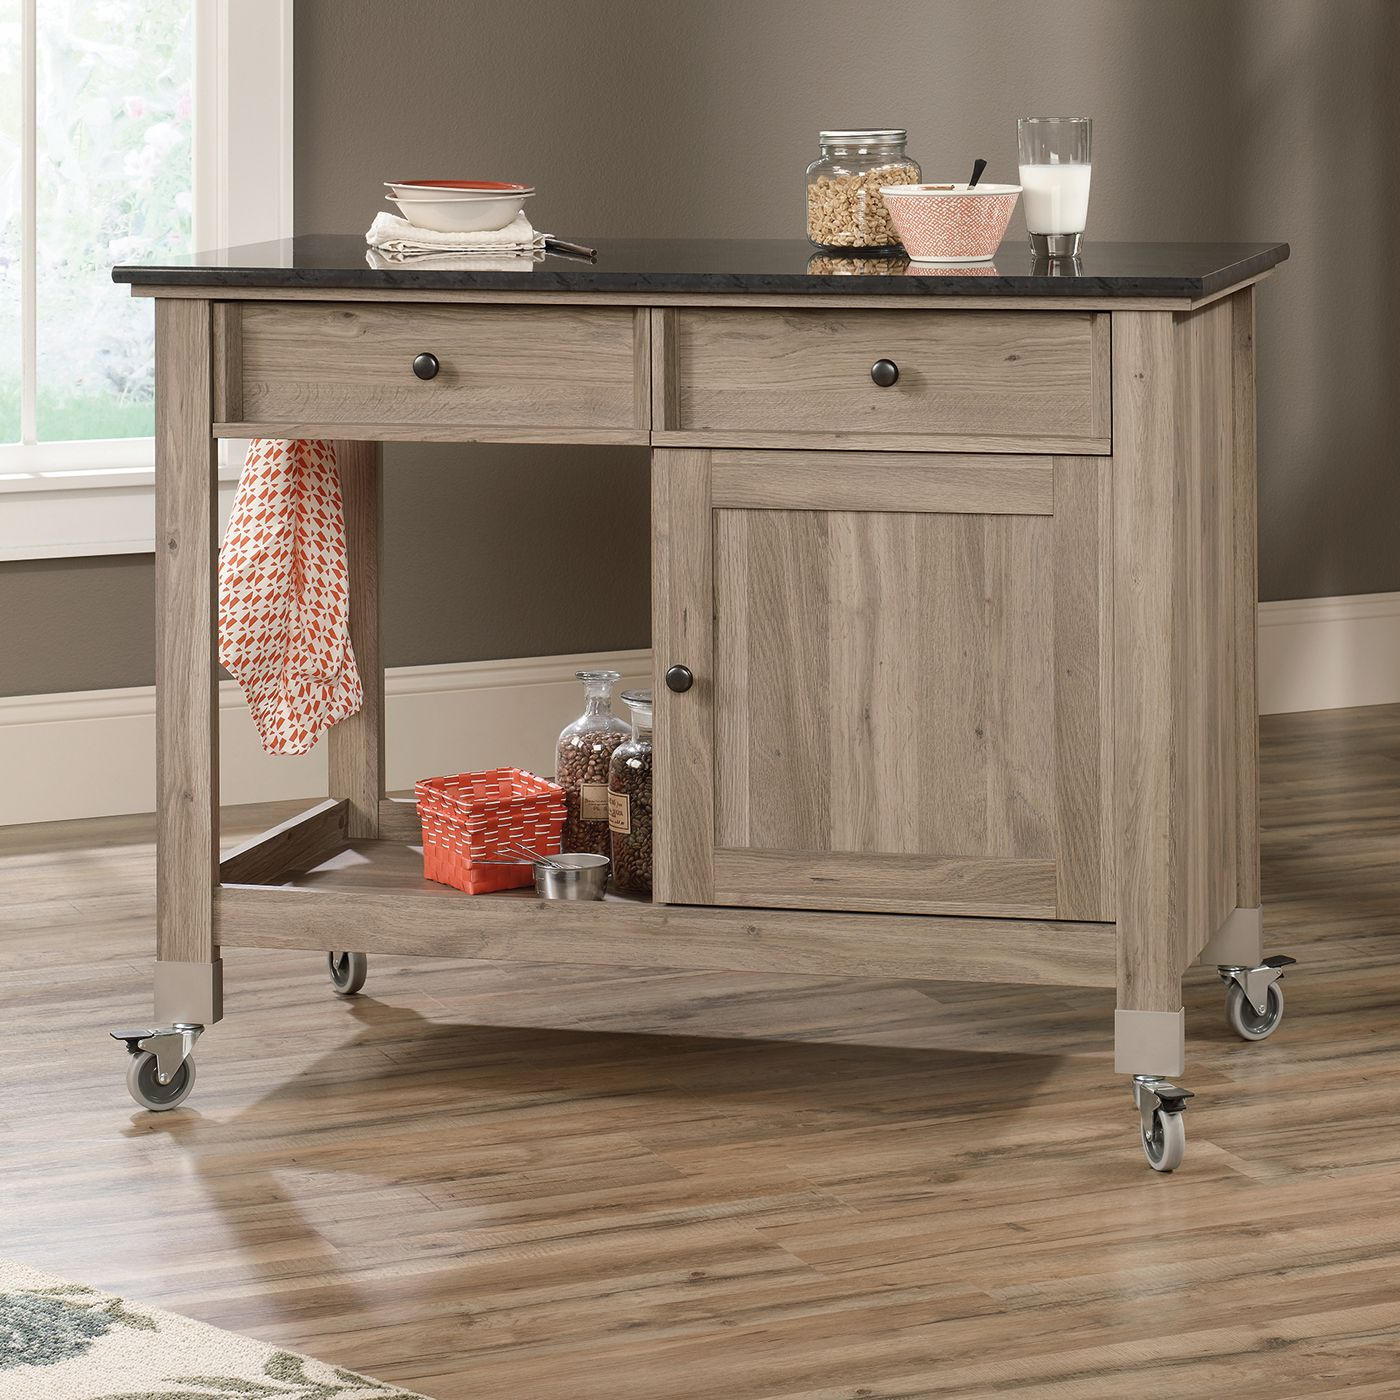 Delicieux Need A Little Extra Counter Space? Wishing For More Storage? A Mobile  Kitchen Island